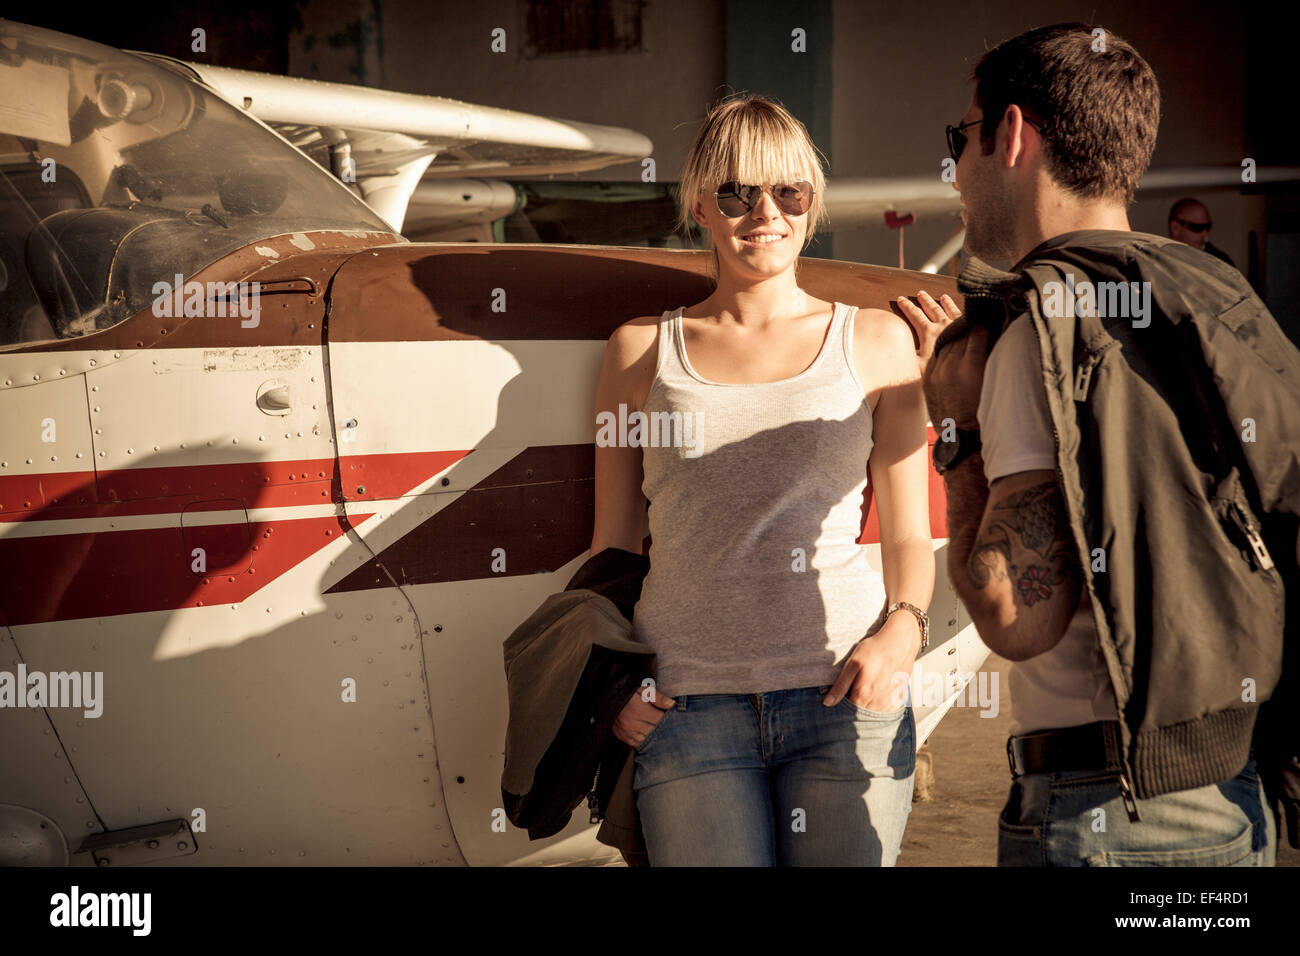 Young couple leaning against propeller airplane - Stock Image